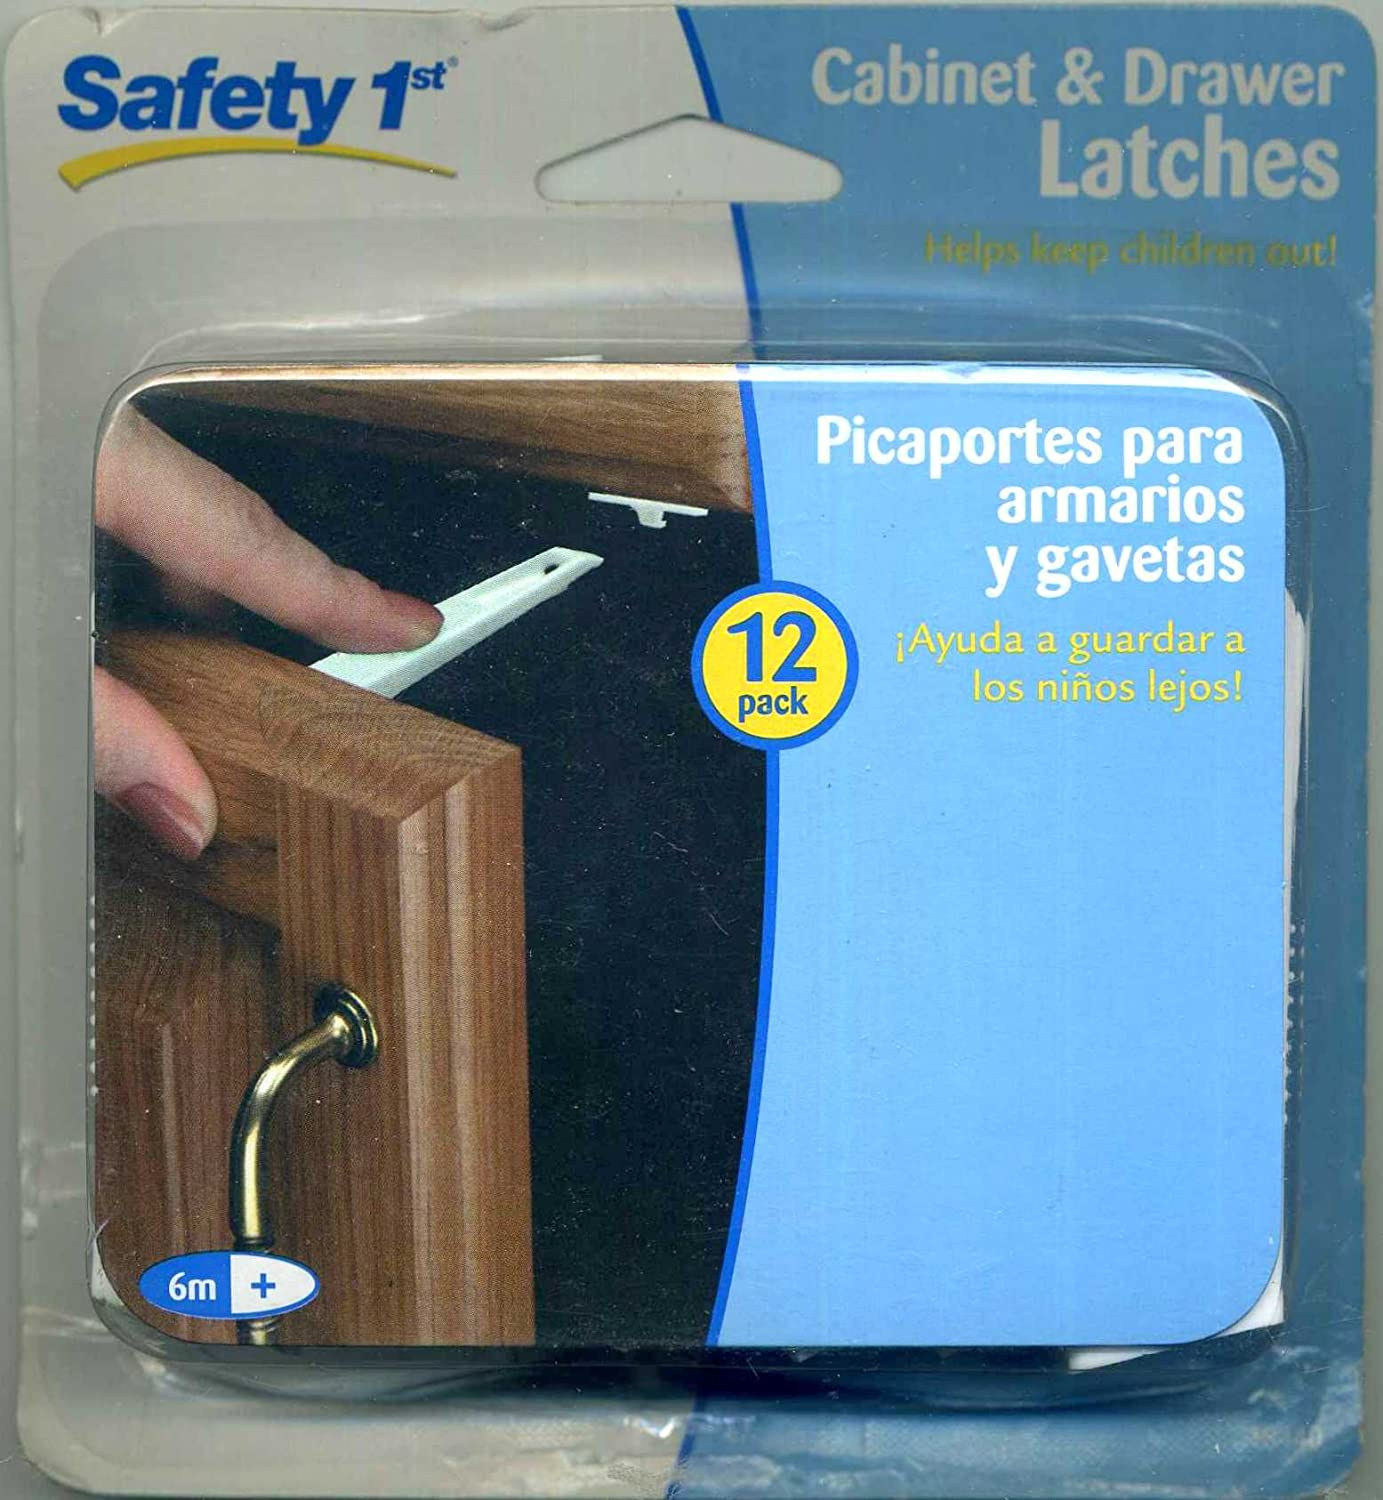 Safety 1 St Cabinet & Drawer Latches 12 Pack